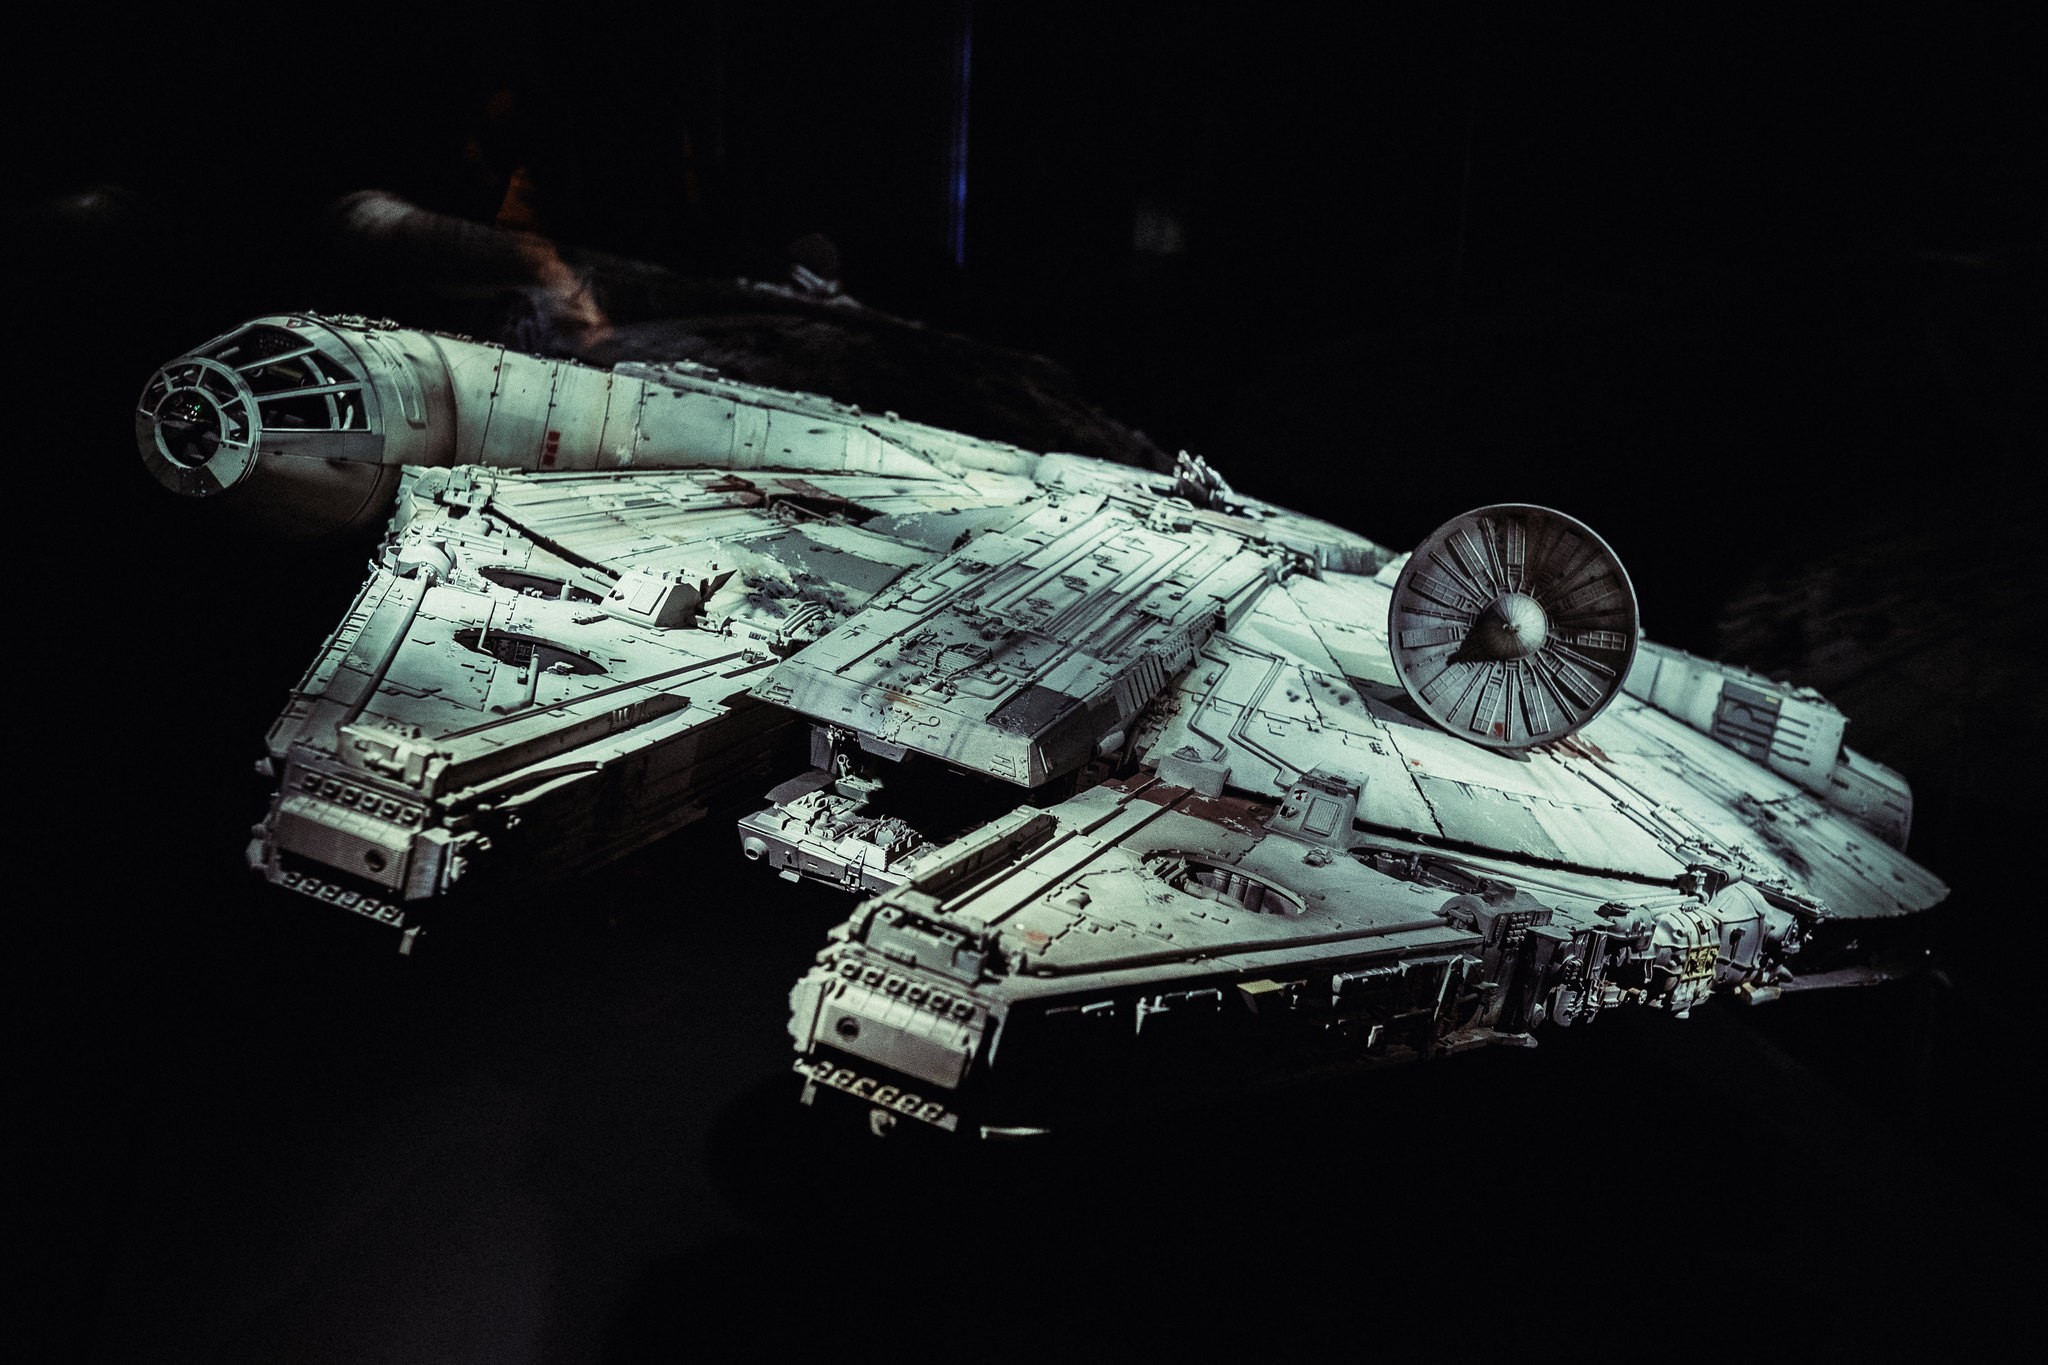 Millennium Falcon, a nave de Star Wars (Foto: Flickr/Kory Westerhold/Creative Commons)